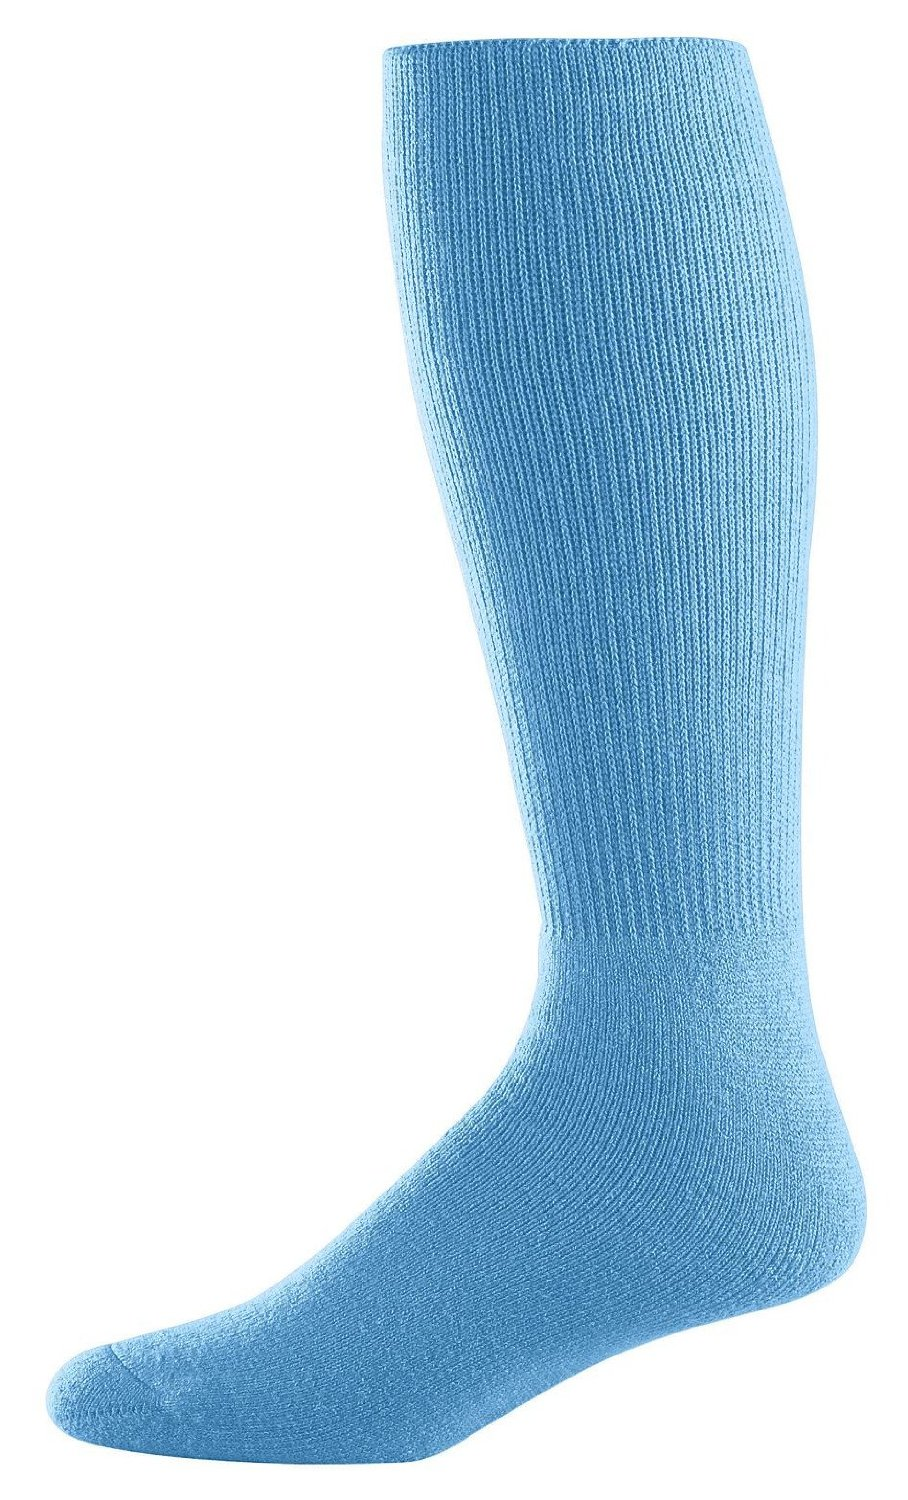 Athletic Socks - Youth Size 7-9, Color: Columbia Blue, Size: 7 - 9